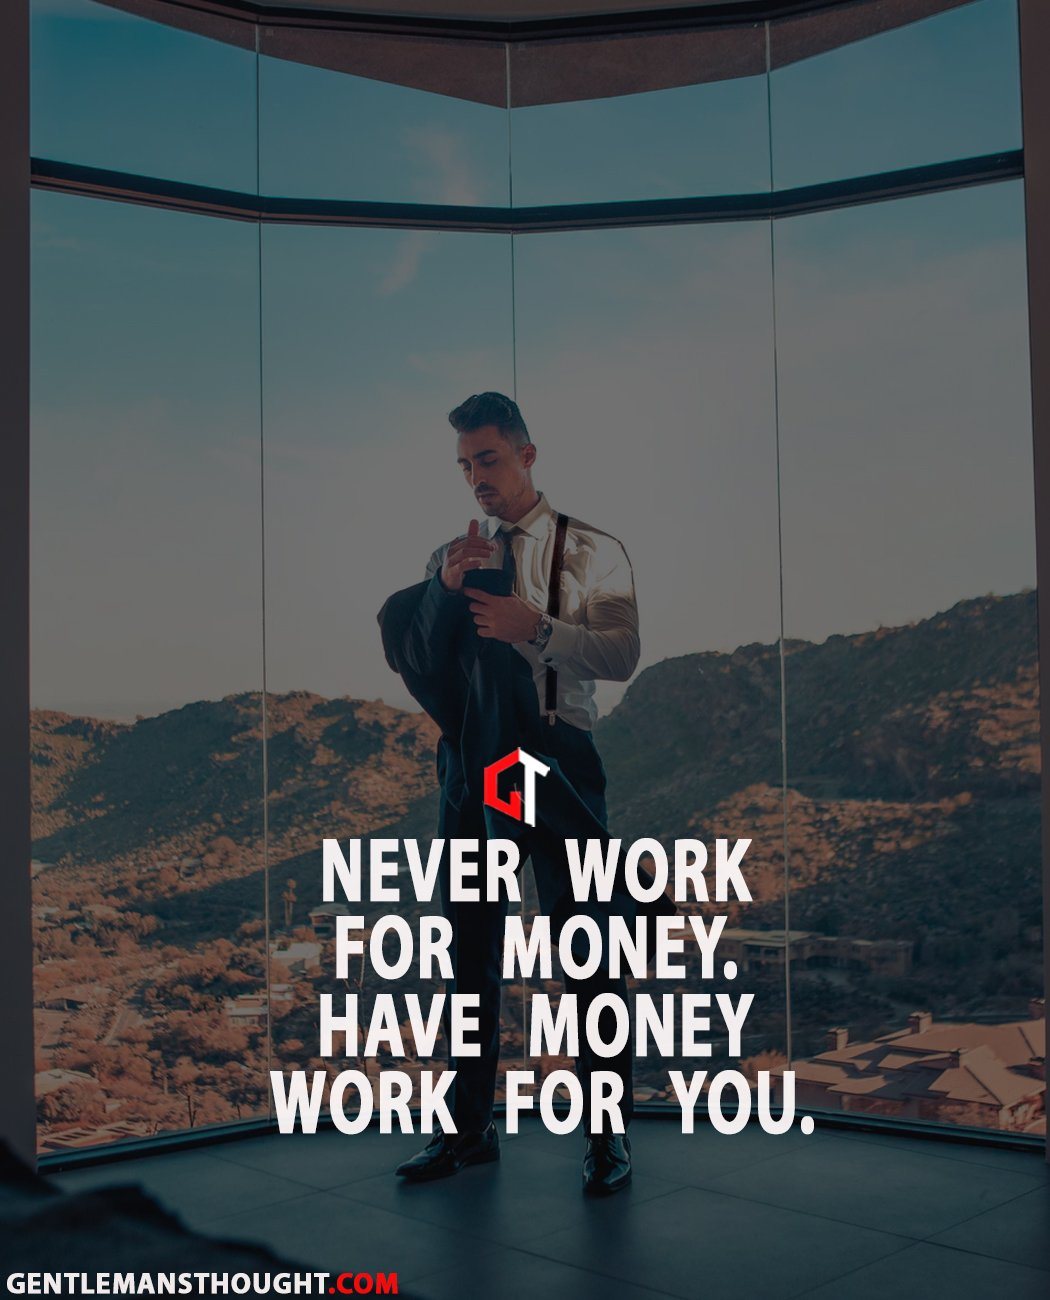 Never work for money. Have money work for you.